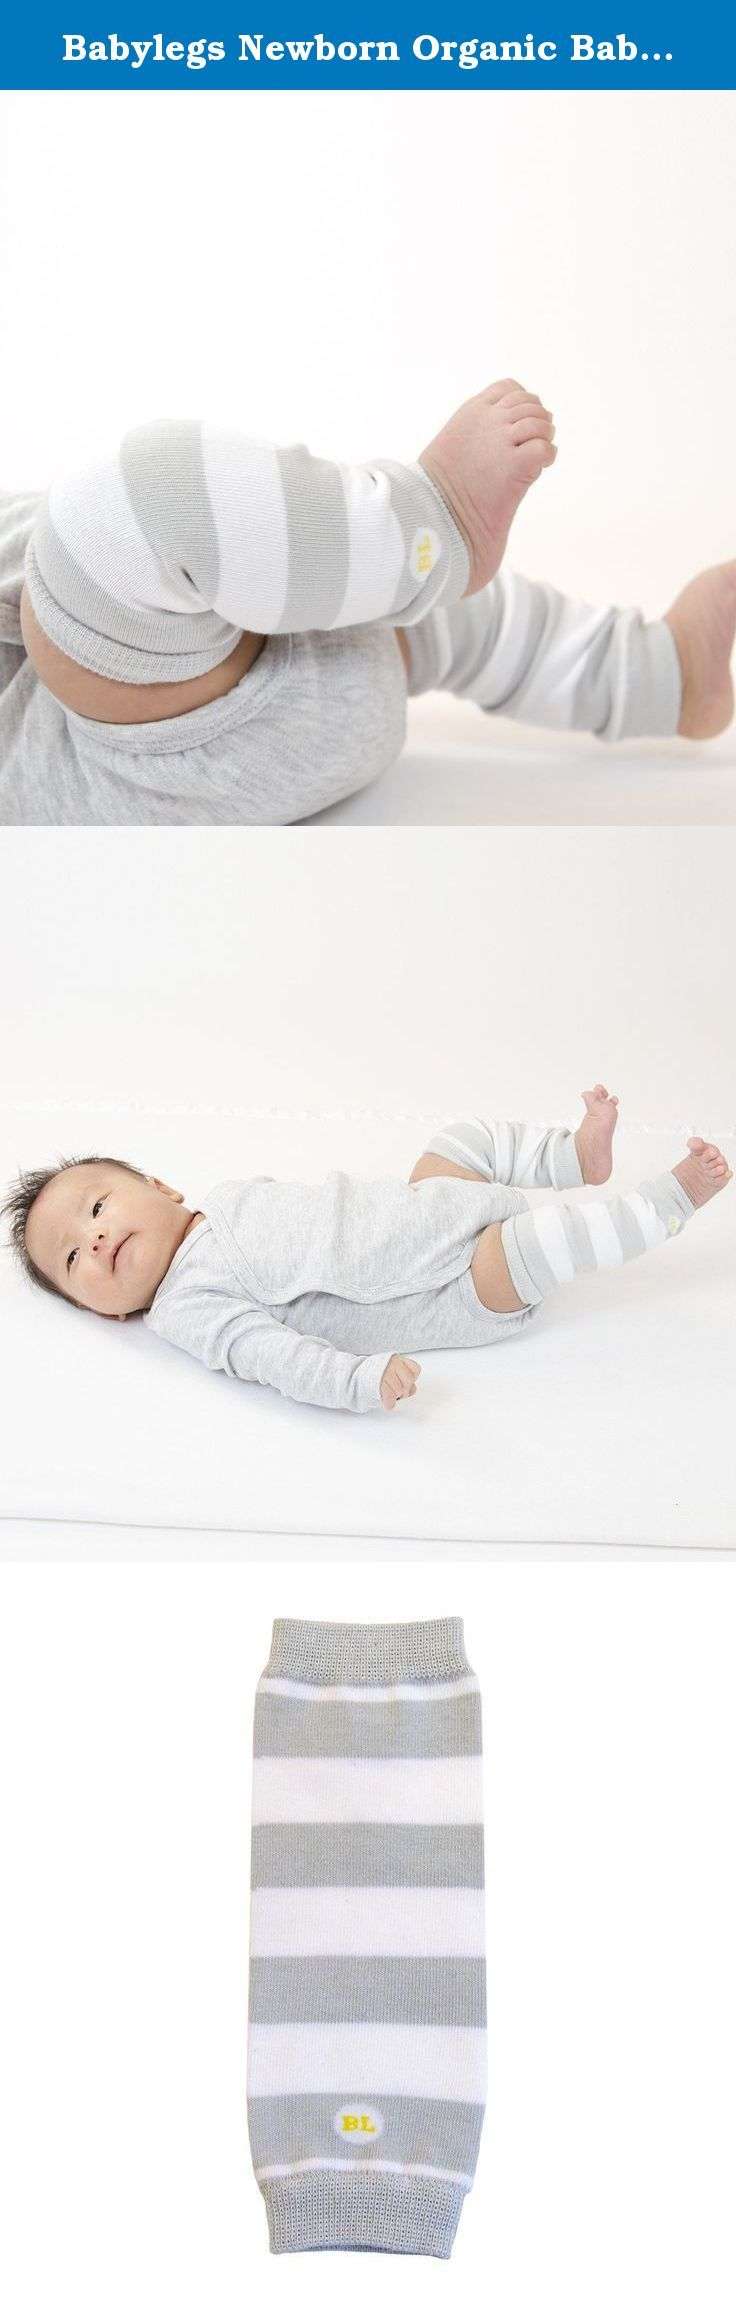 Babylegs Newborn Organic Baby Legwarmers (Love Dove Stripes). Smaller version of best-selling Original Babylegs designed for newborn-3 months. Like busy moms, these legwarmers multi-task! Baby Legs provide easy access to diapers and help keep little legs (and arms) warm. In a multitude of woven designs, good for both girls and boys. Babylegs also make a fun fashion statement with any outfit.